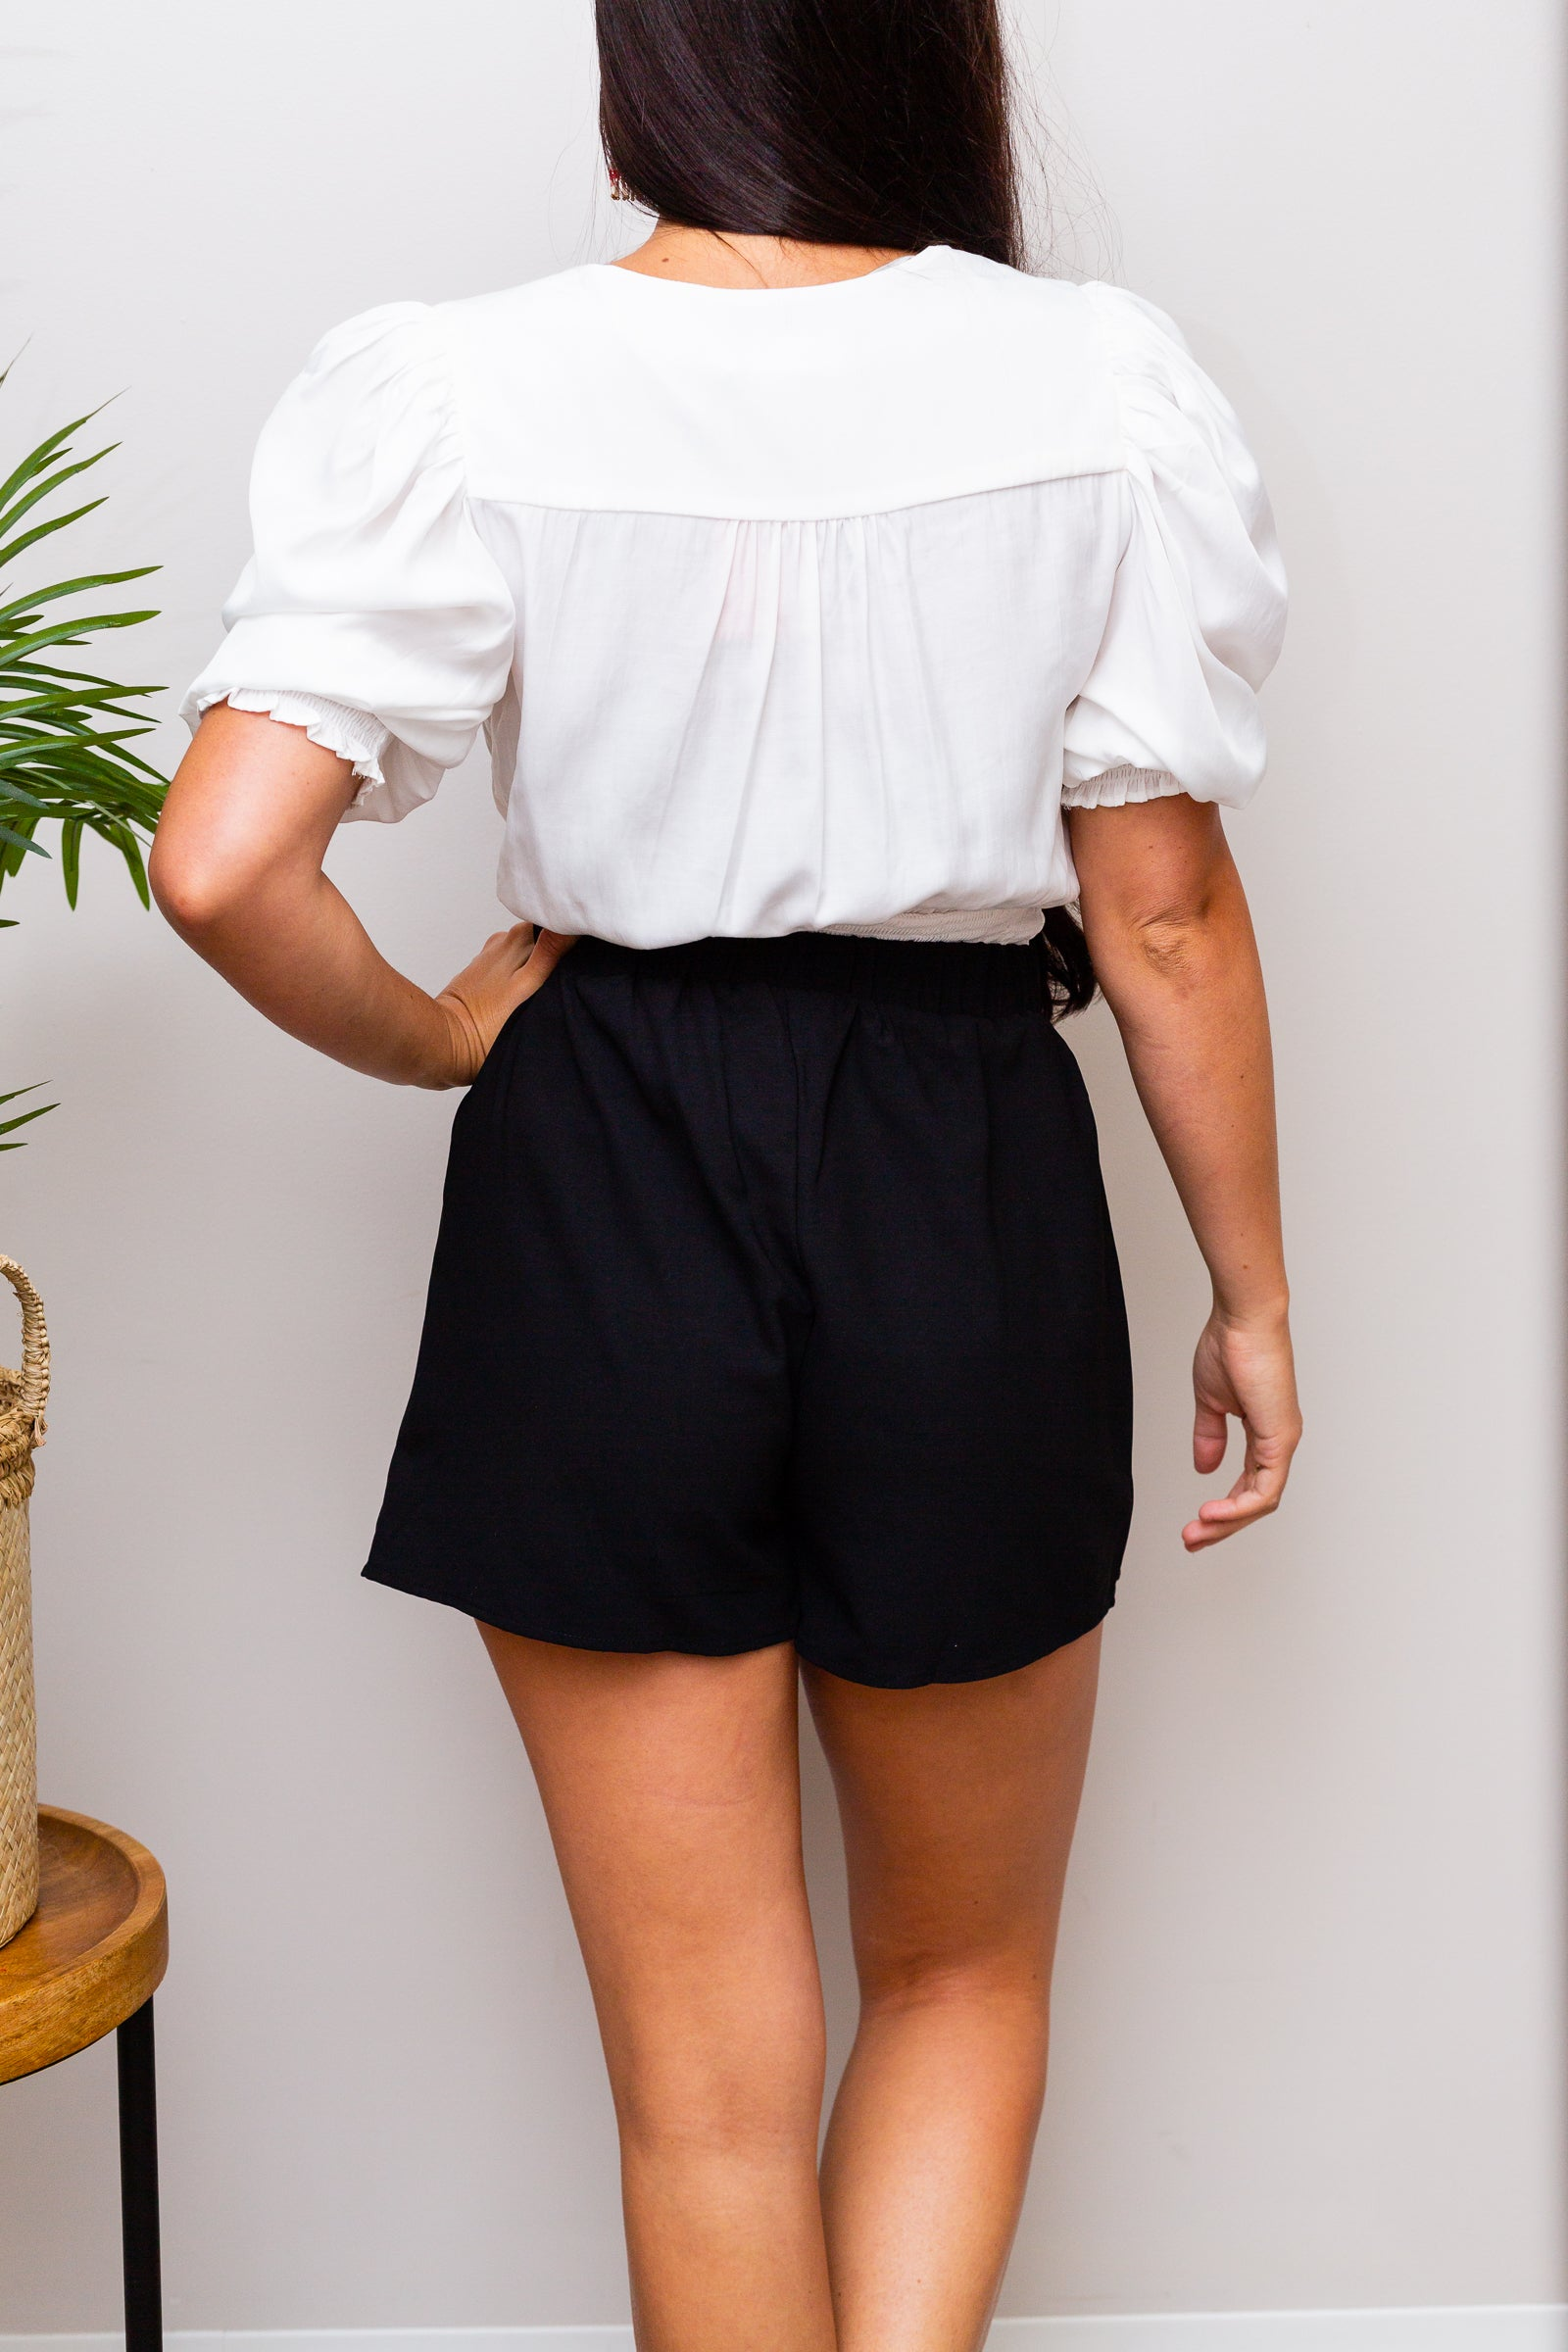 This classic skort has a fitted elastic waistband that leads down to an asymmetric skirt panel that lays atop of relaxed-fitting shorts.